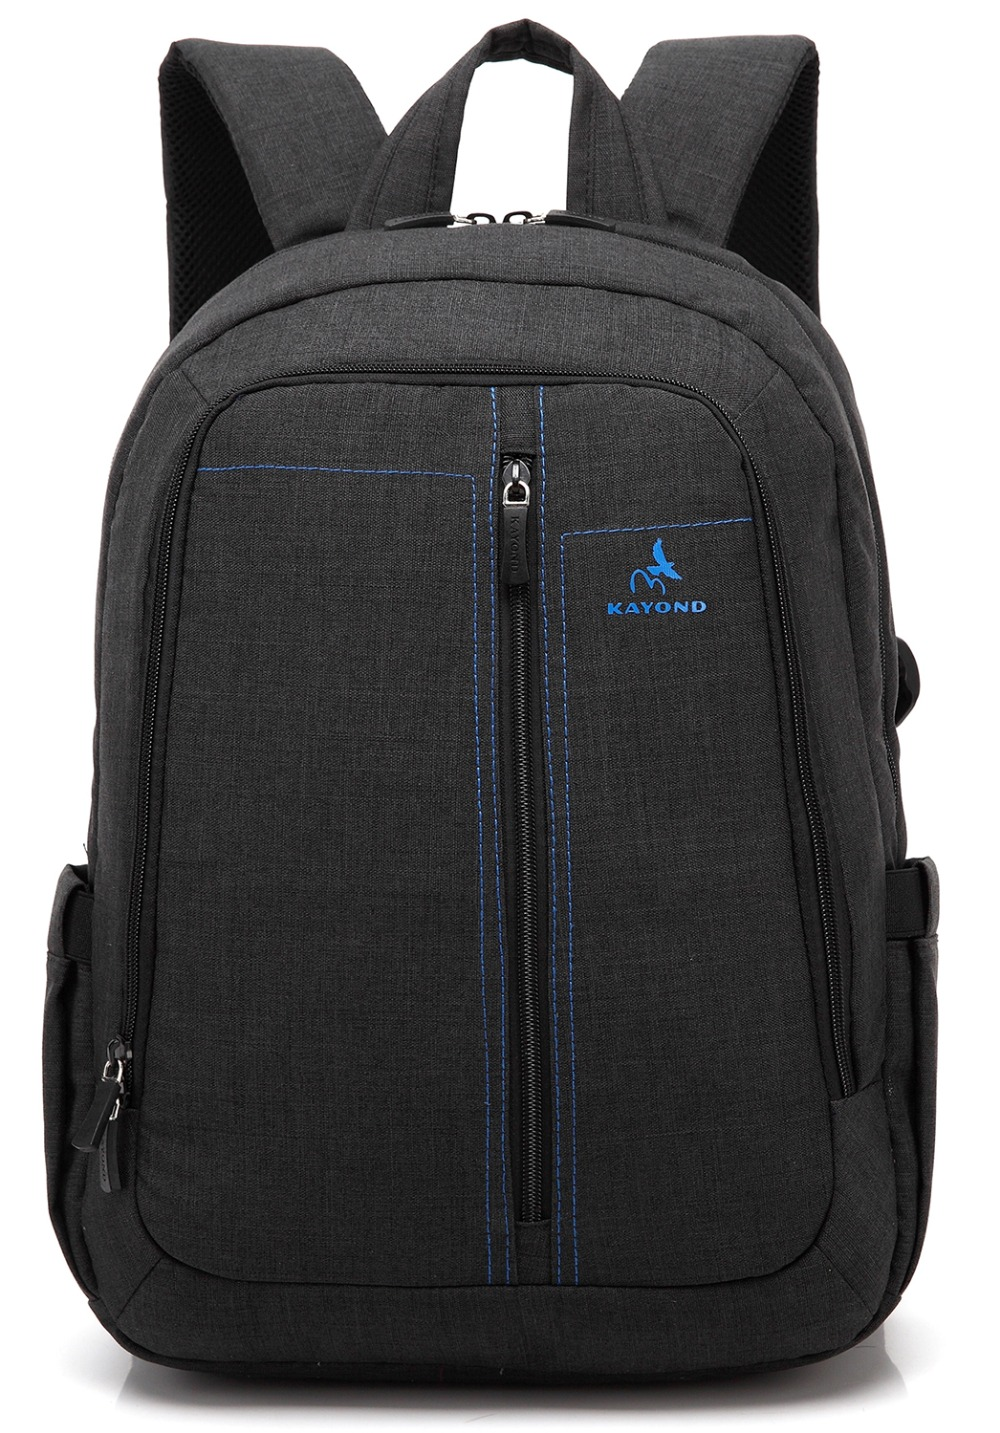 Dell Backpack Reviews - Online Shopping Dell Backpack Reviews on Aliexpress.com | Alibaba Group